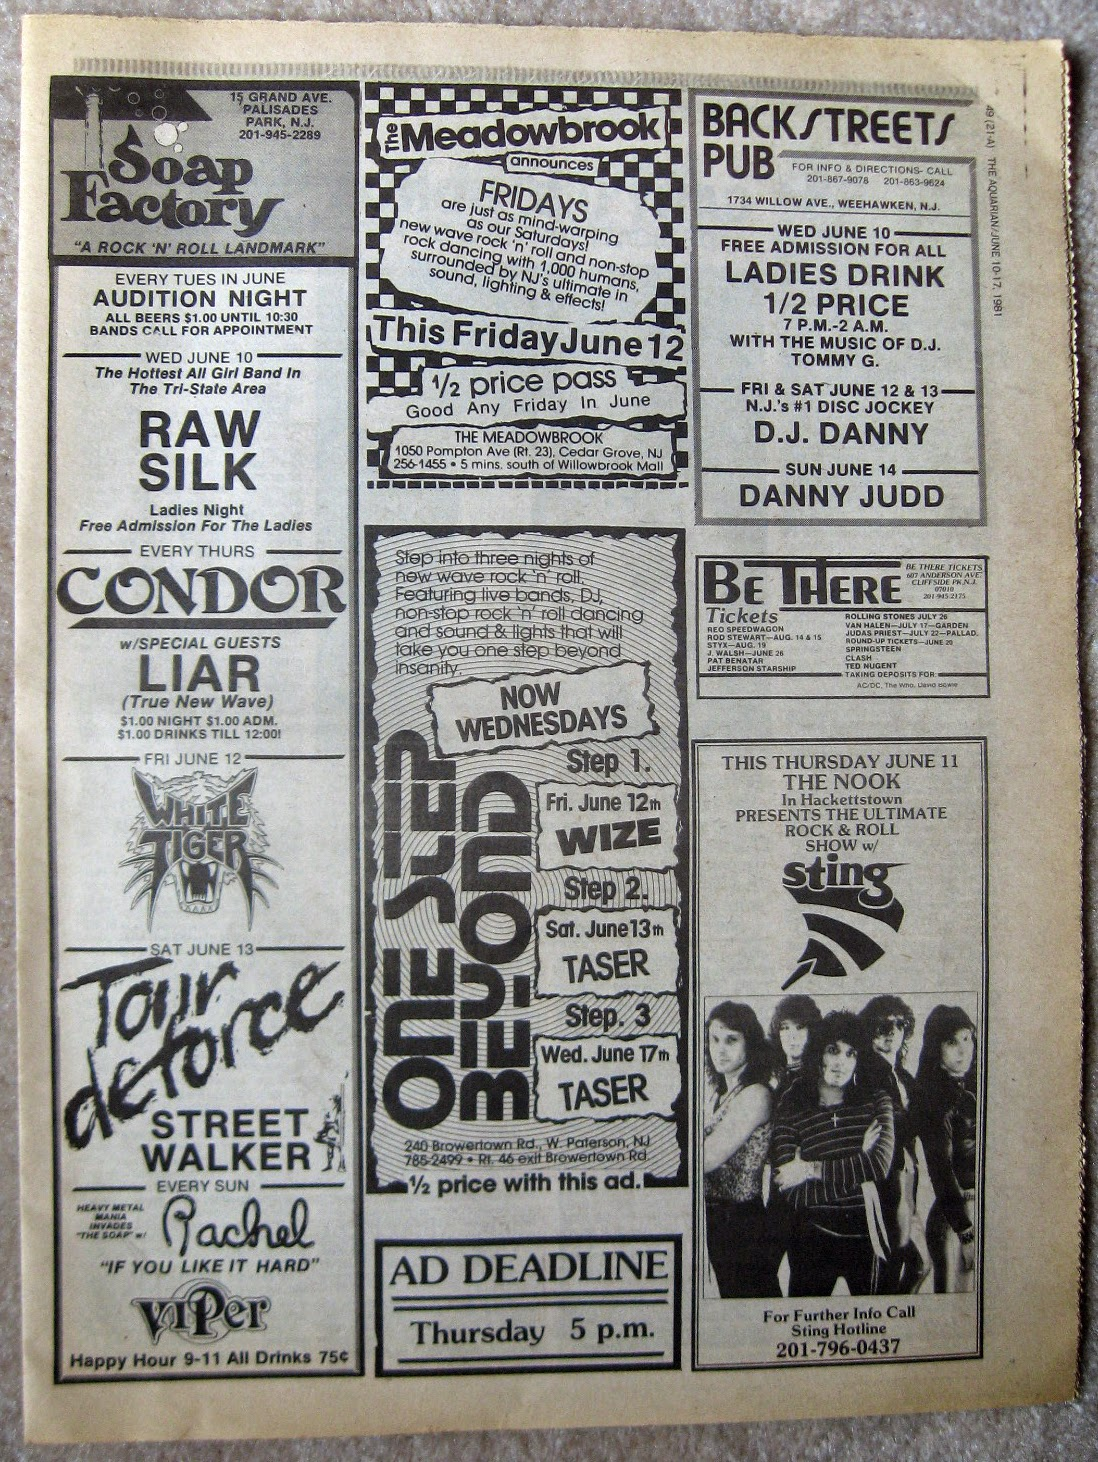 Soap Factory - The Meadowbrook - One Step Beyond - Backstreets Pub - The Nook band line ups 1981